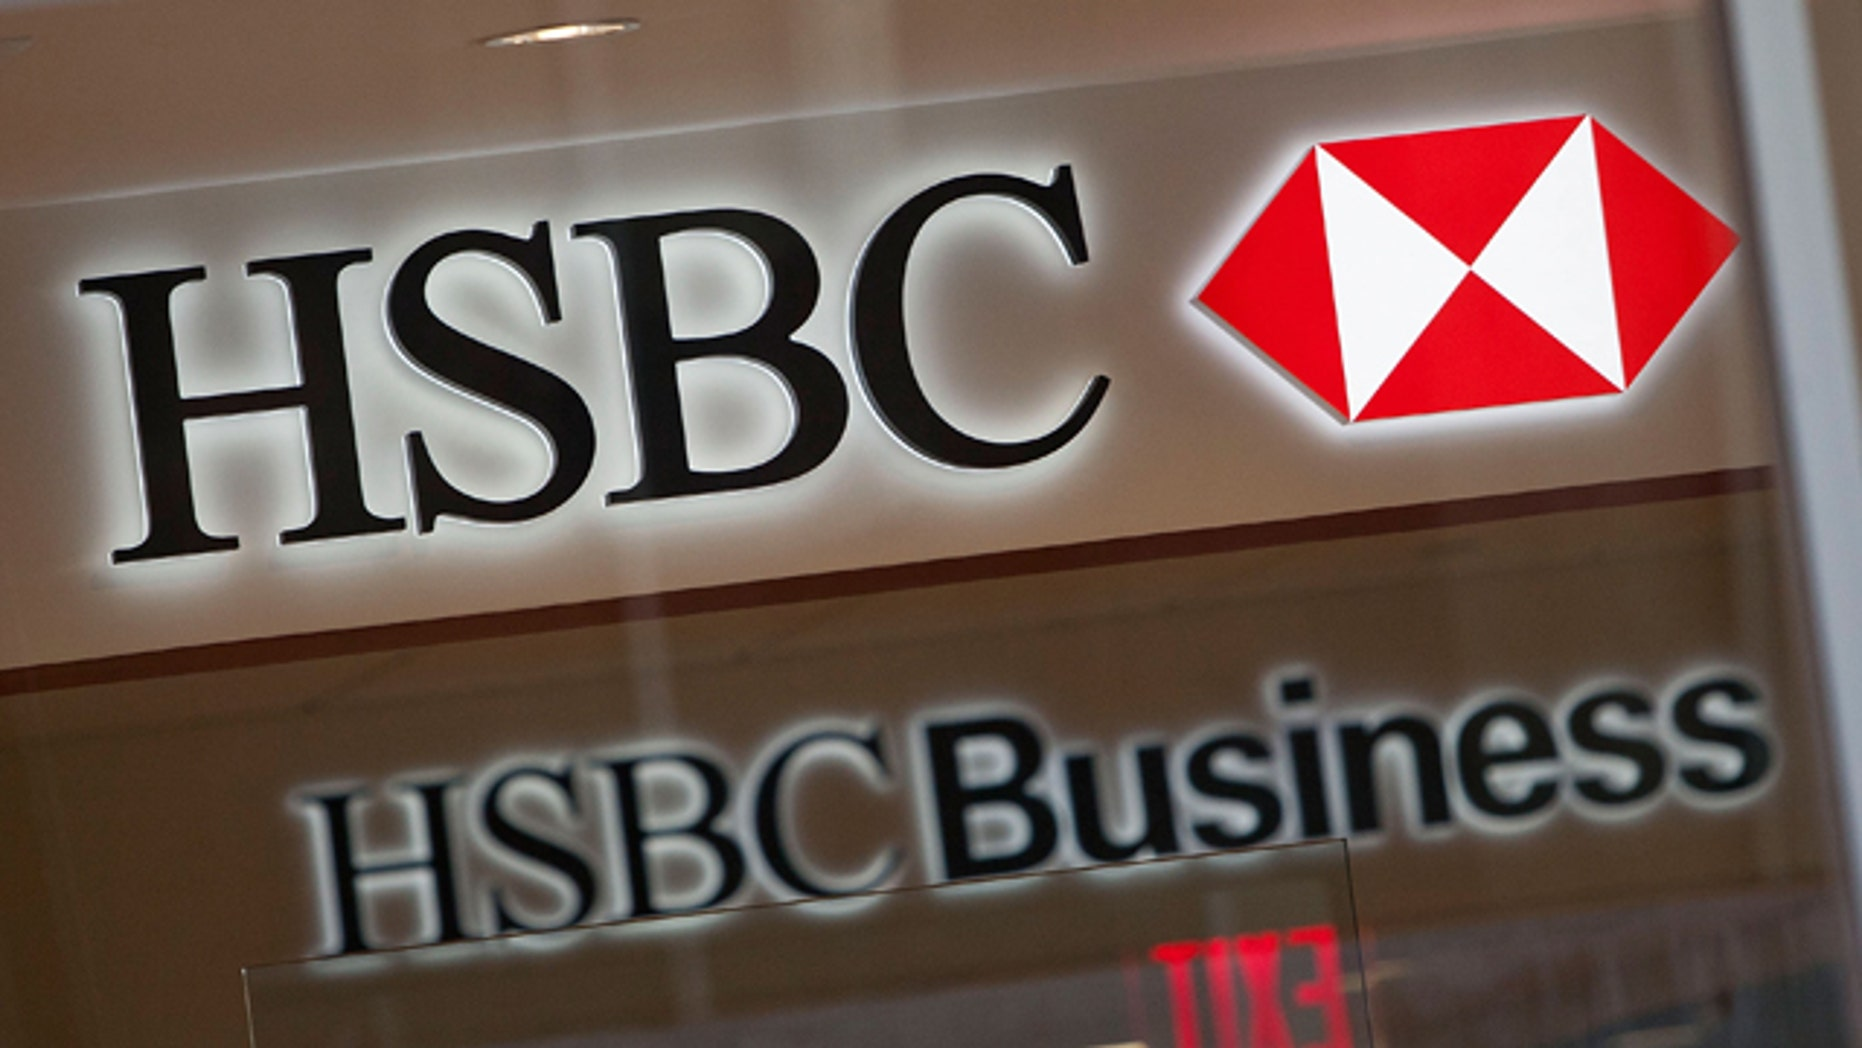 NEW YORK, NY - AUGUST 01:  A sign hangs on a HSBC Bank branch at 110 William Street August 1, 2011 in New York City. According to reports. HSBC will eliminate 30,000 jobs worldwide and sell 195 branches, mostly in upstate New York, to First Niagara Financial for about $1 billion.  (Photo by Andrew Burton/Getty Images)